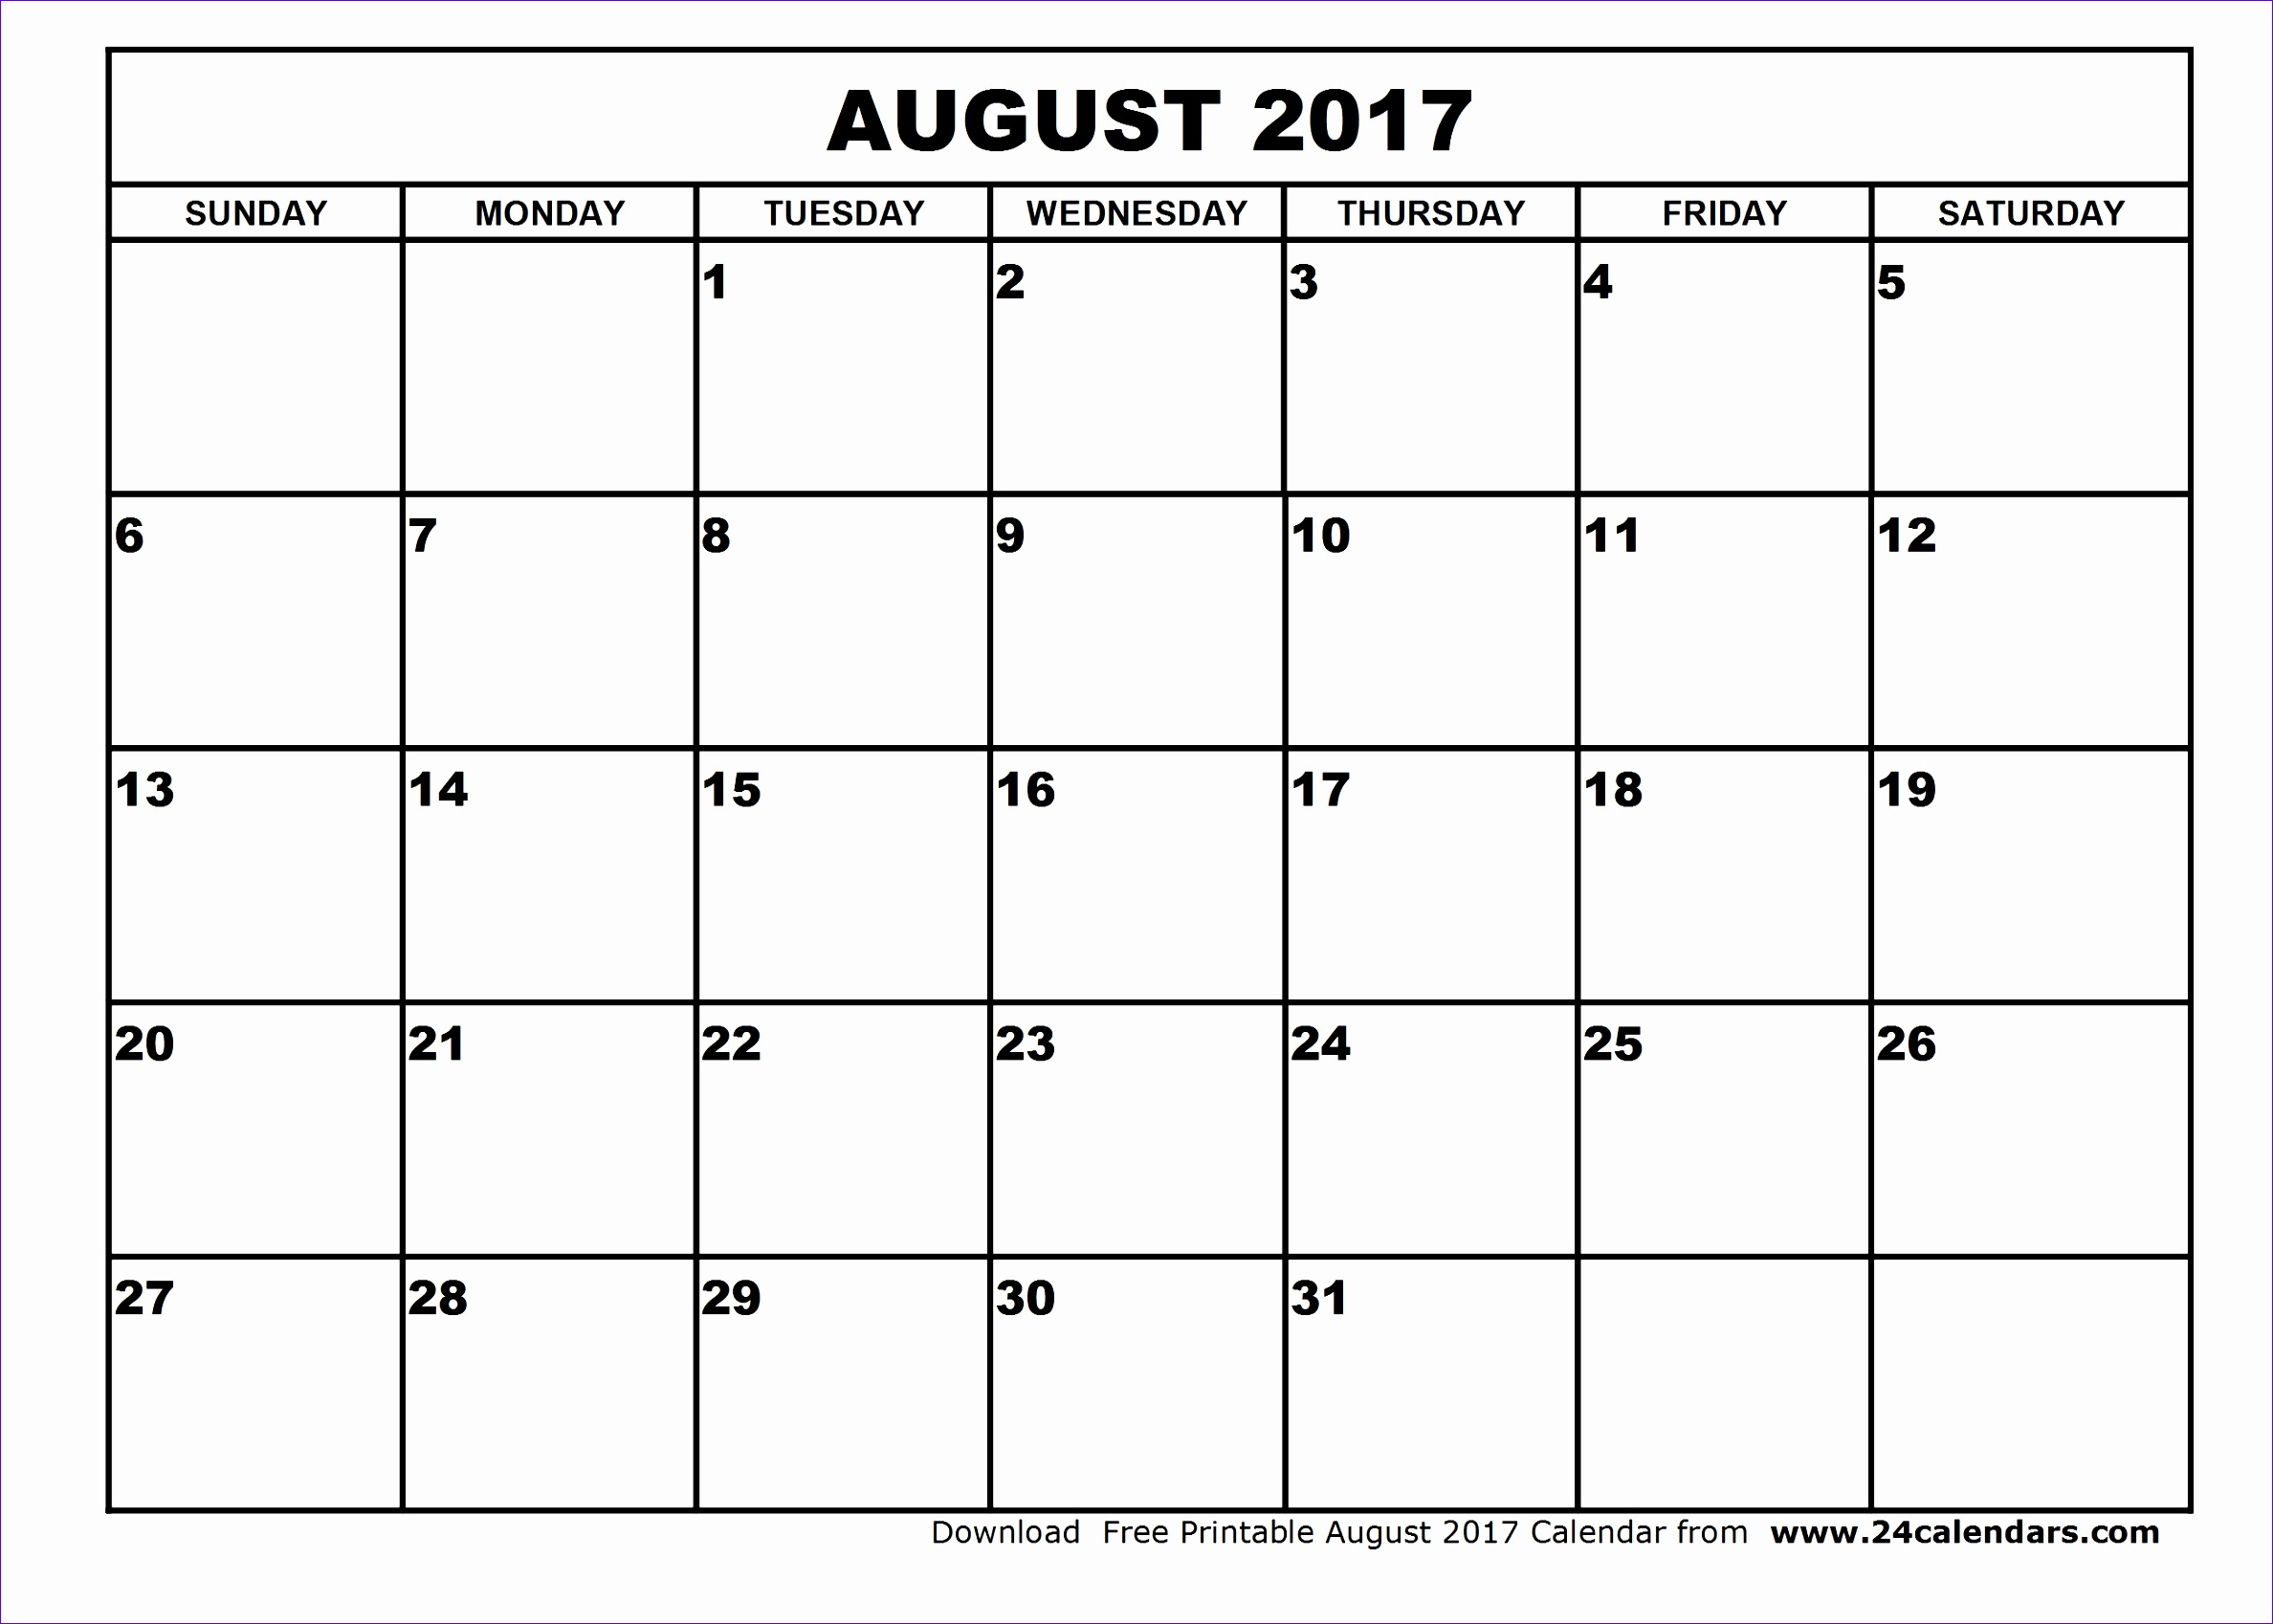 Calendar Excel Templates Cuufq Unique August 2017 Calendar Excel 26111846